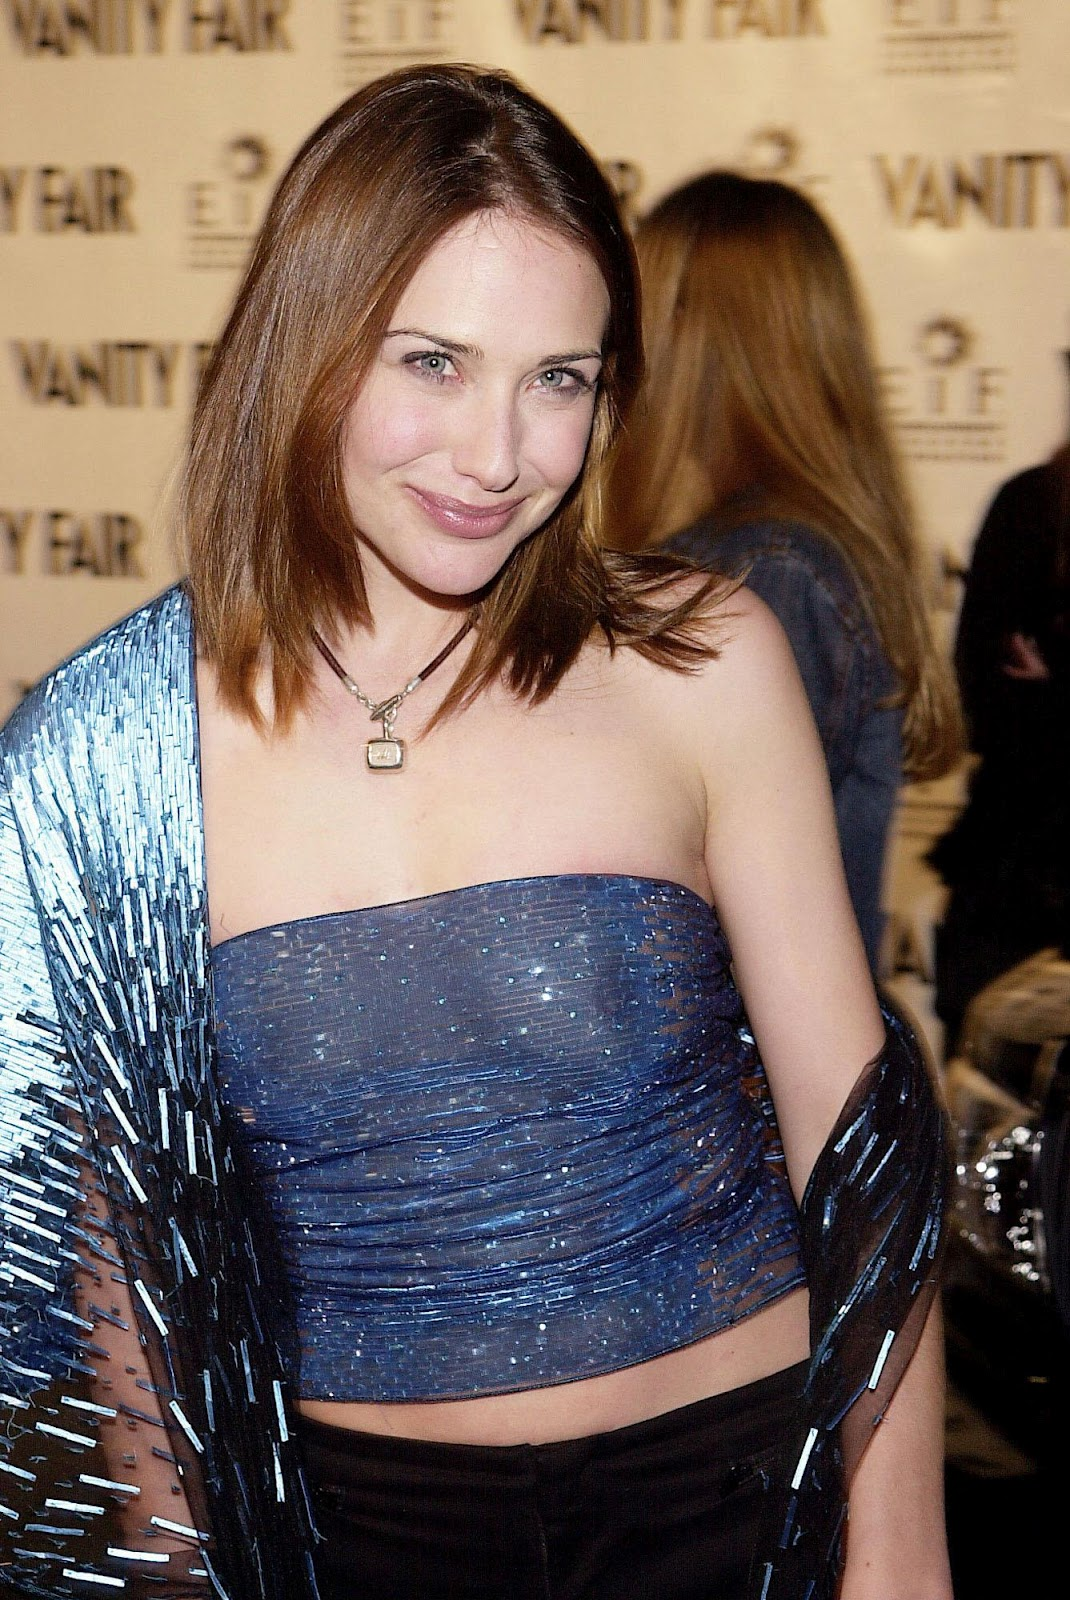 Claire forlani hot